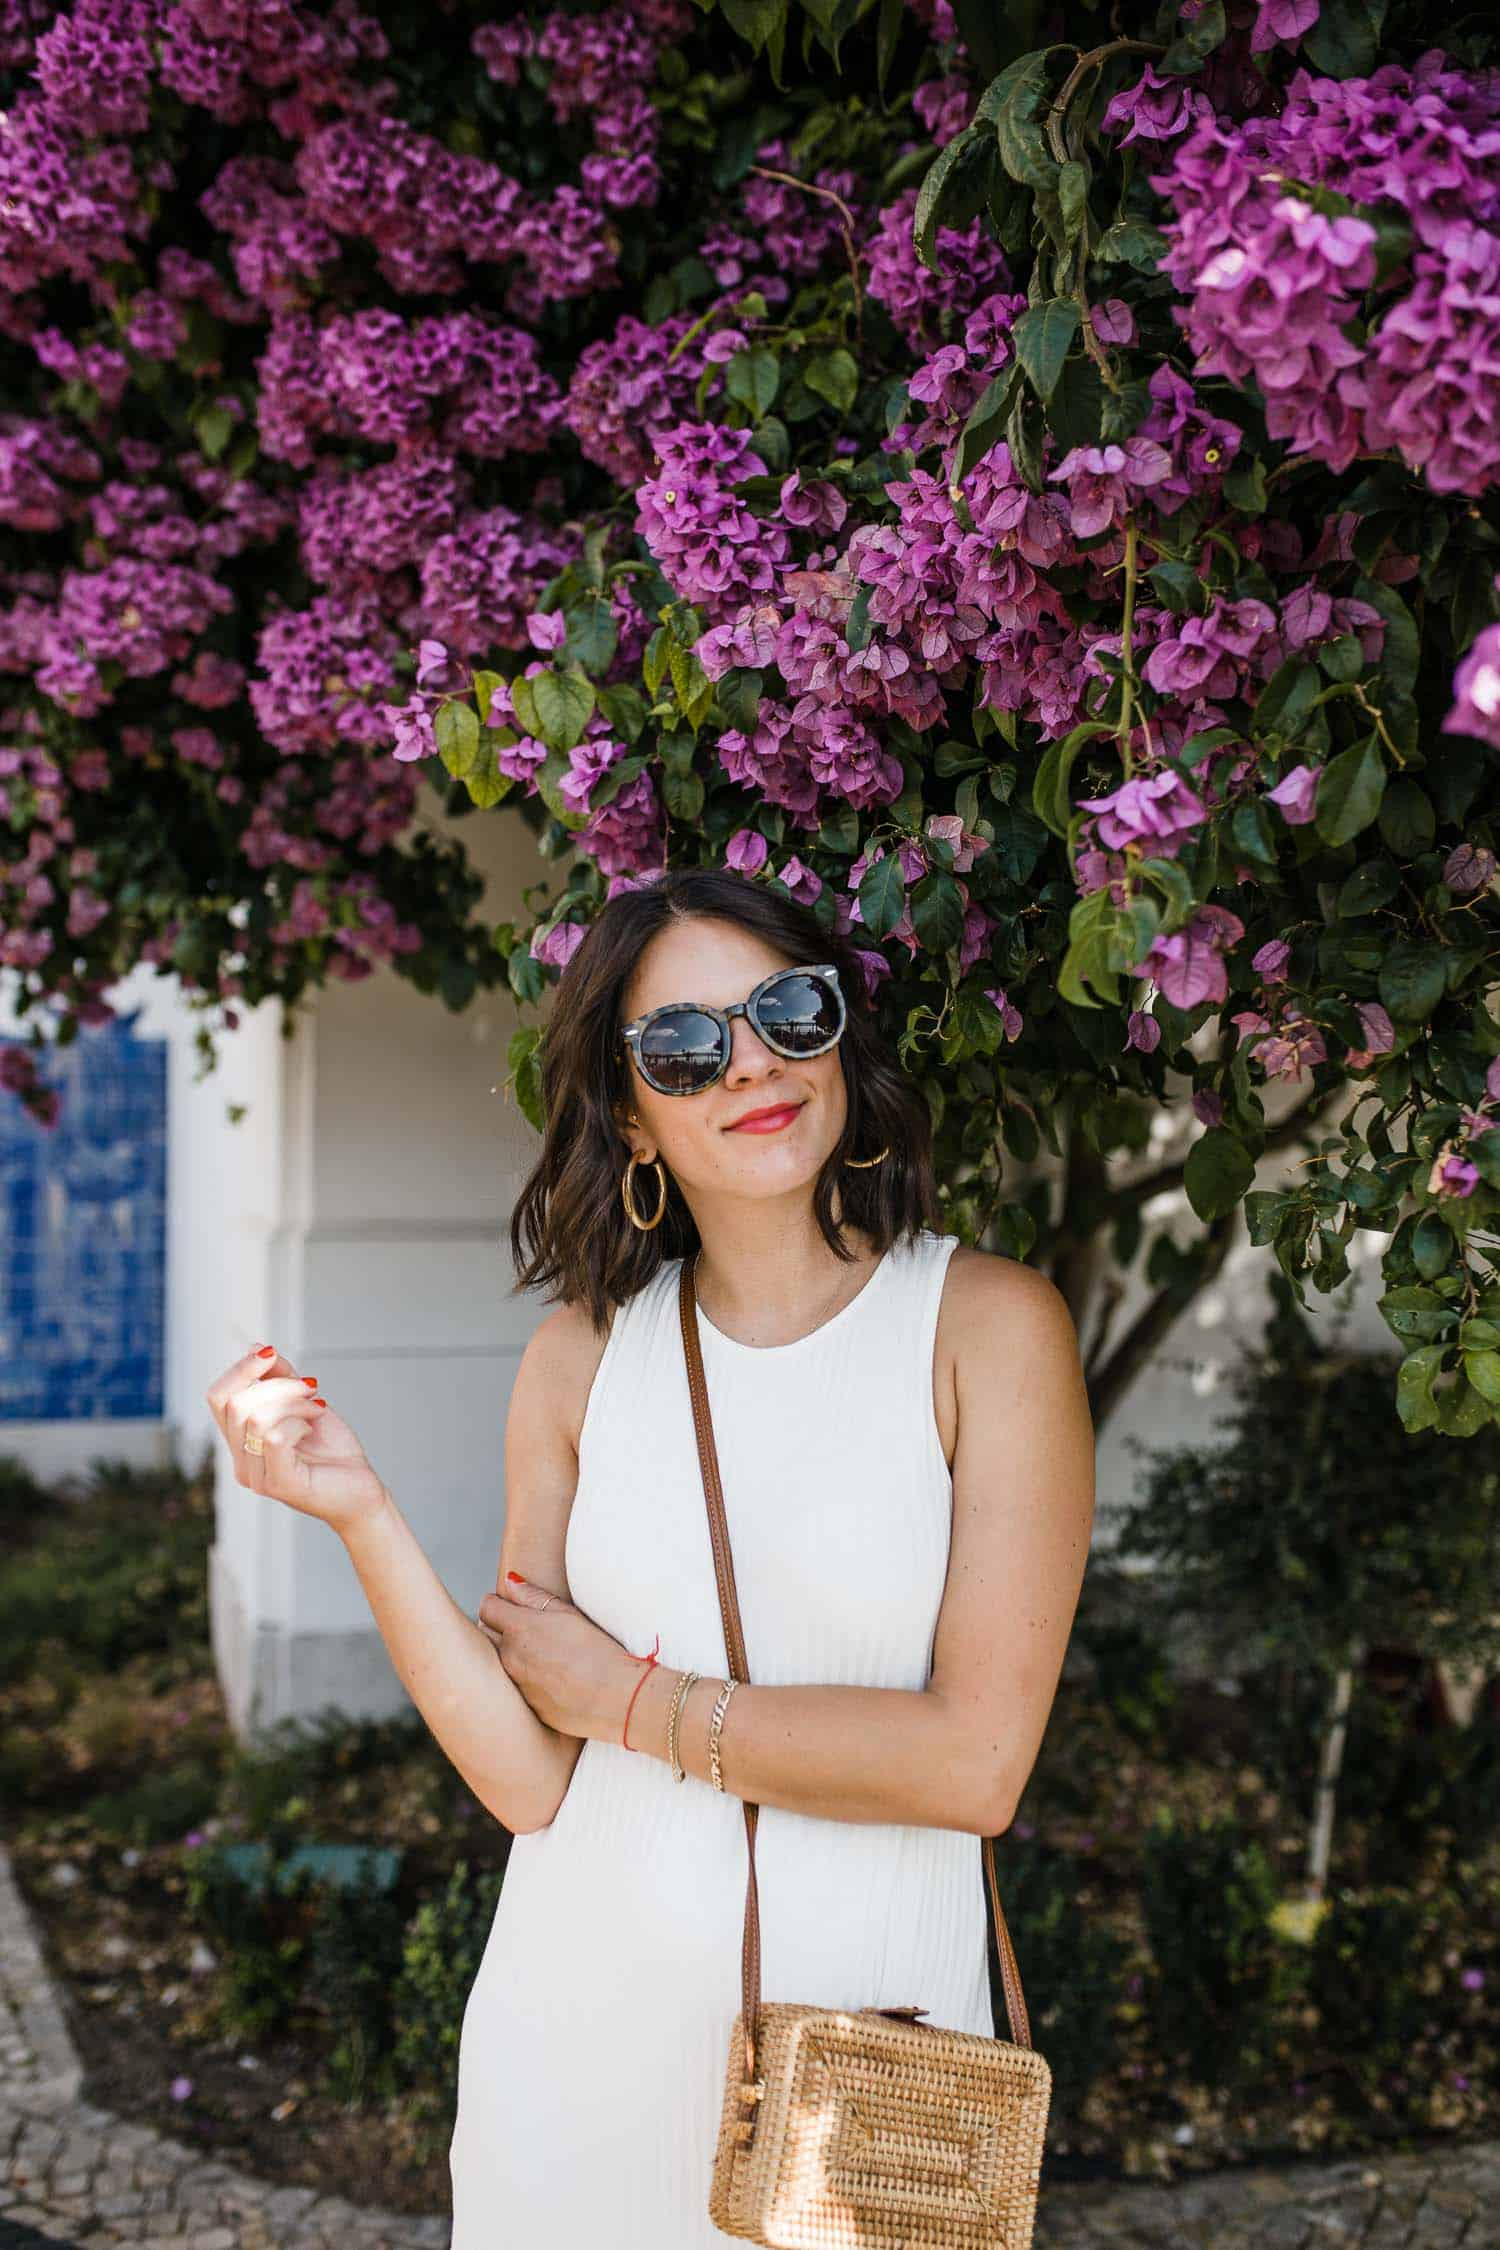 Instagrammable Spots In Lisbon with purple flowers in the background